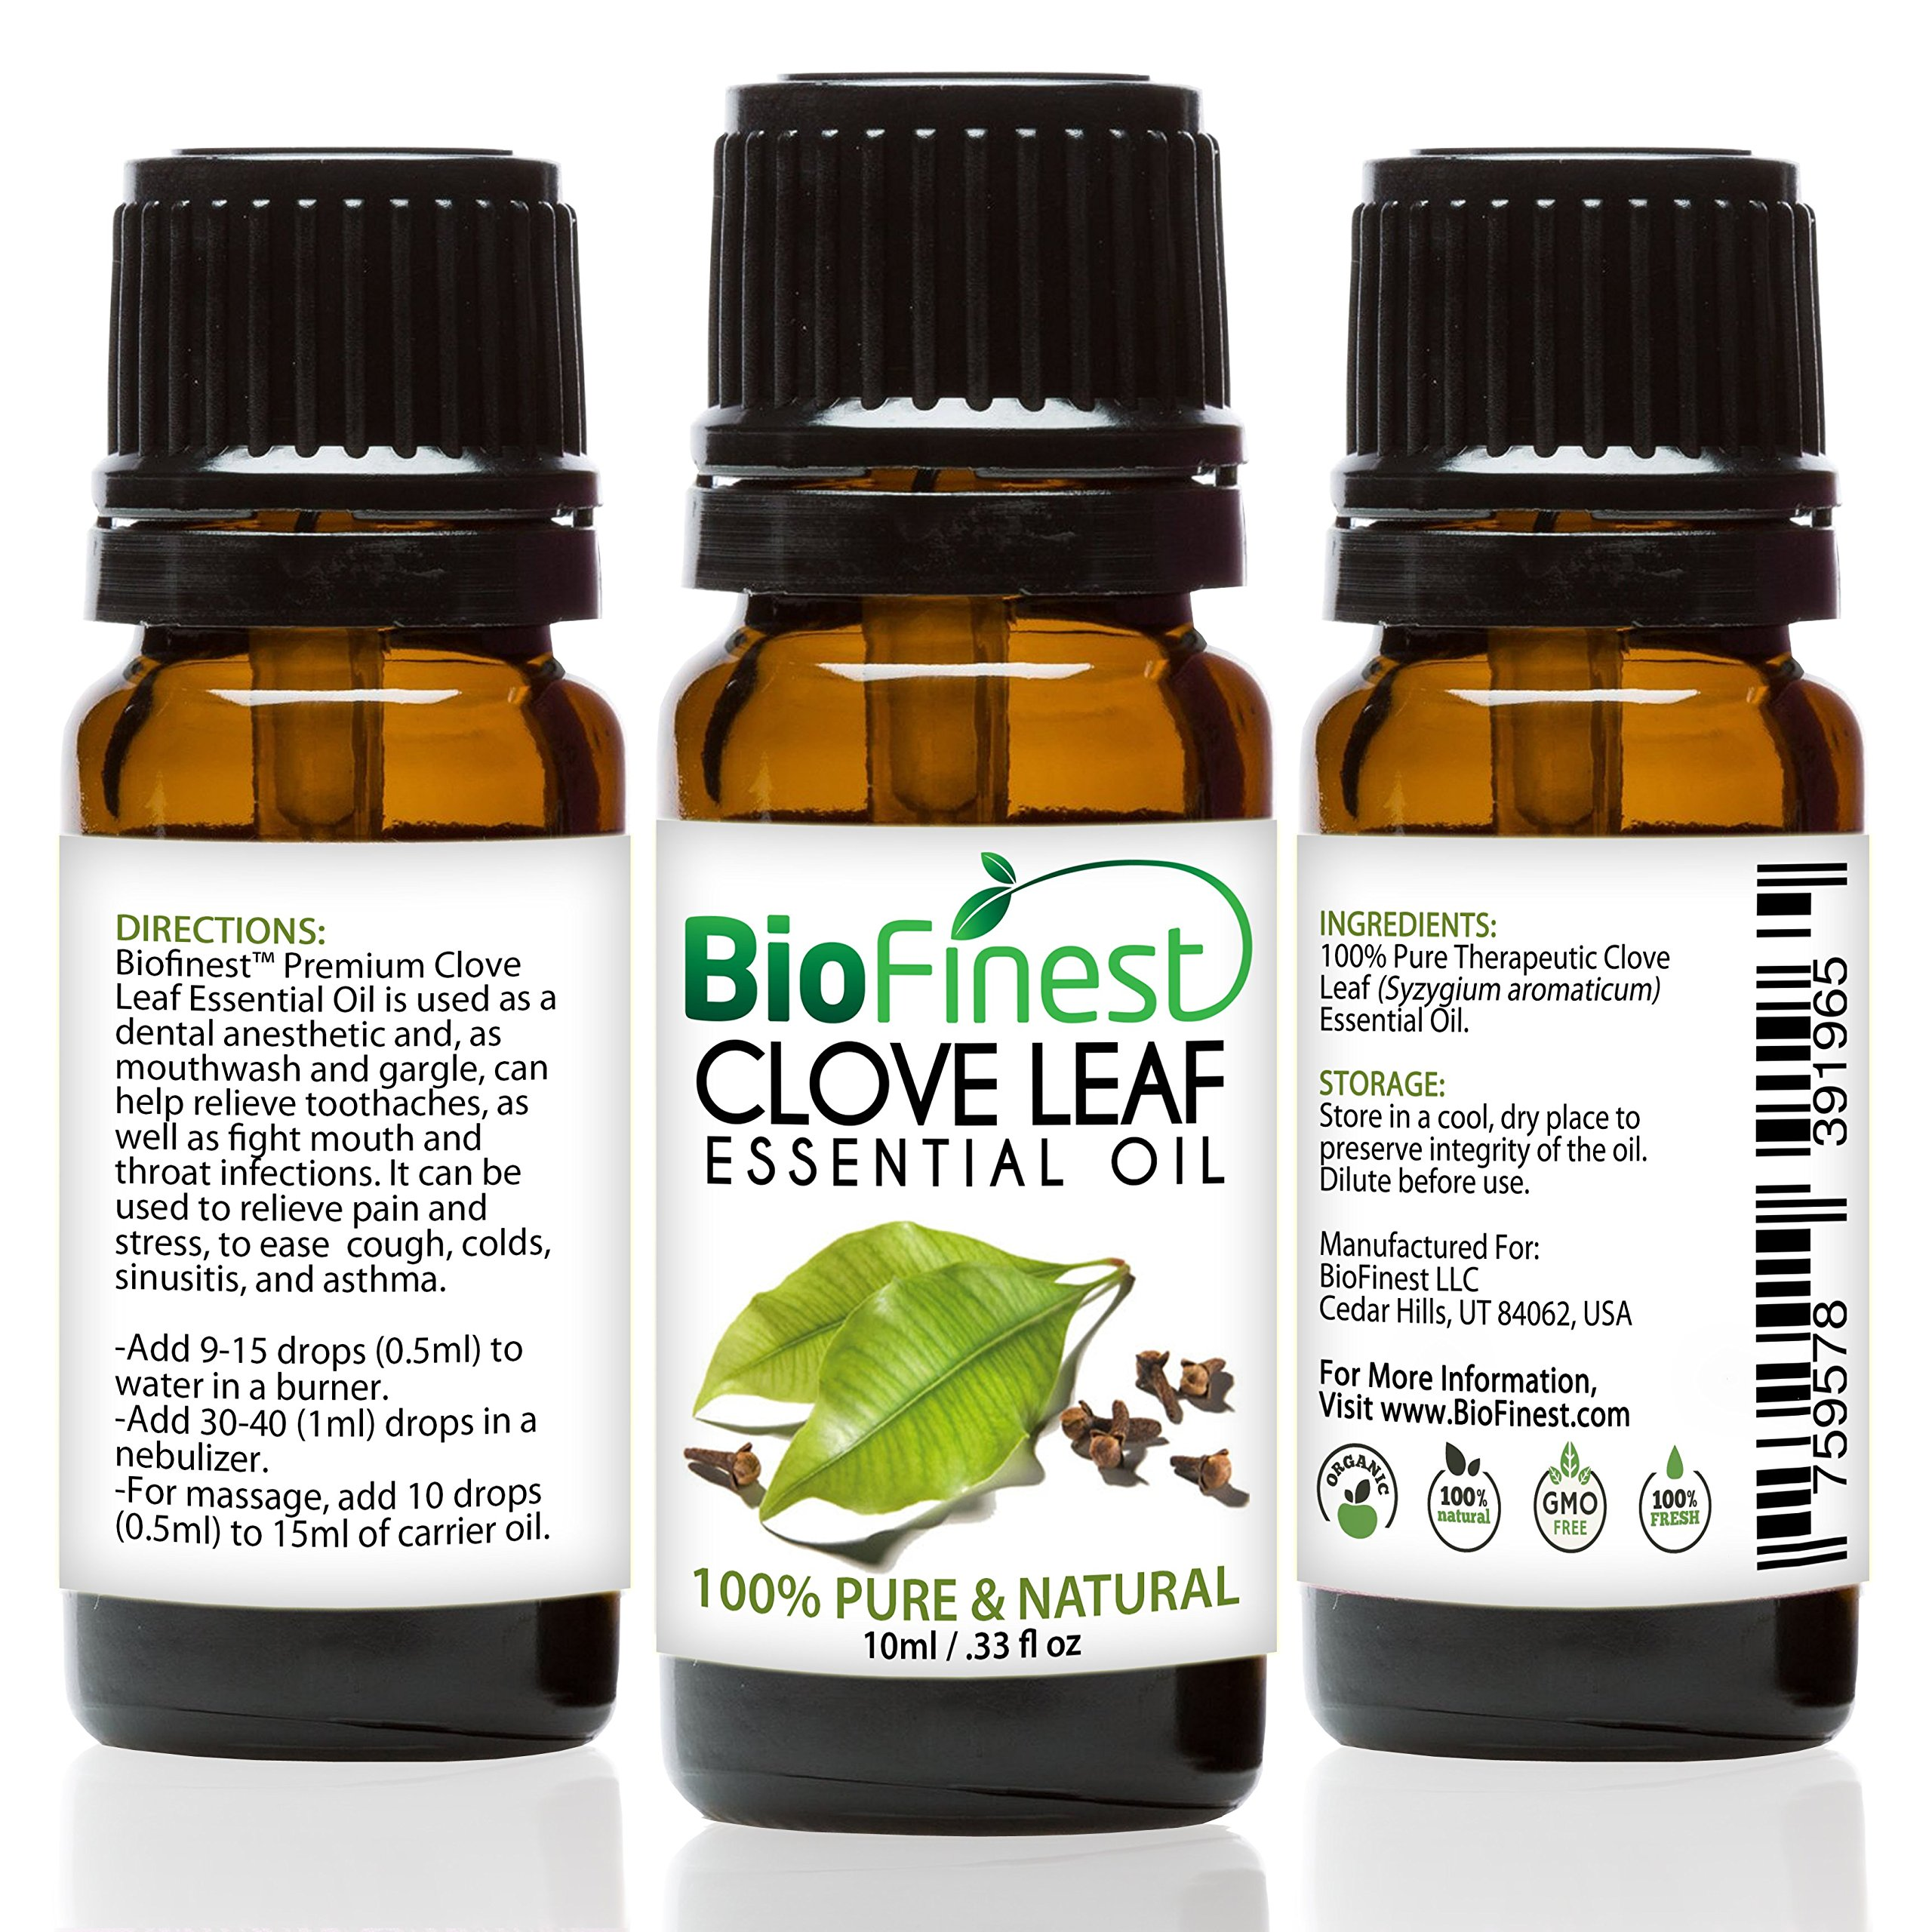 BioFinest Clove Leaf Oil - 100% Pure Clove Essential Oil - Premium Organic - Therapeutic Grade - Best For Tooth Aches - Anti-Bacteria - Natural Skin Care - FREE Essential Oil Guide (10ml)